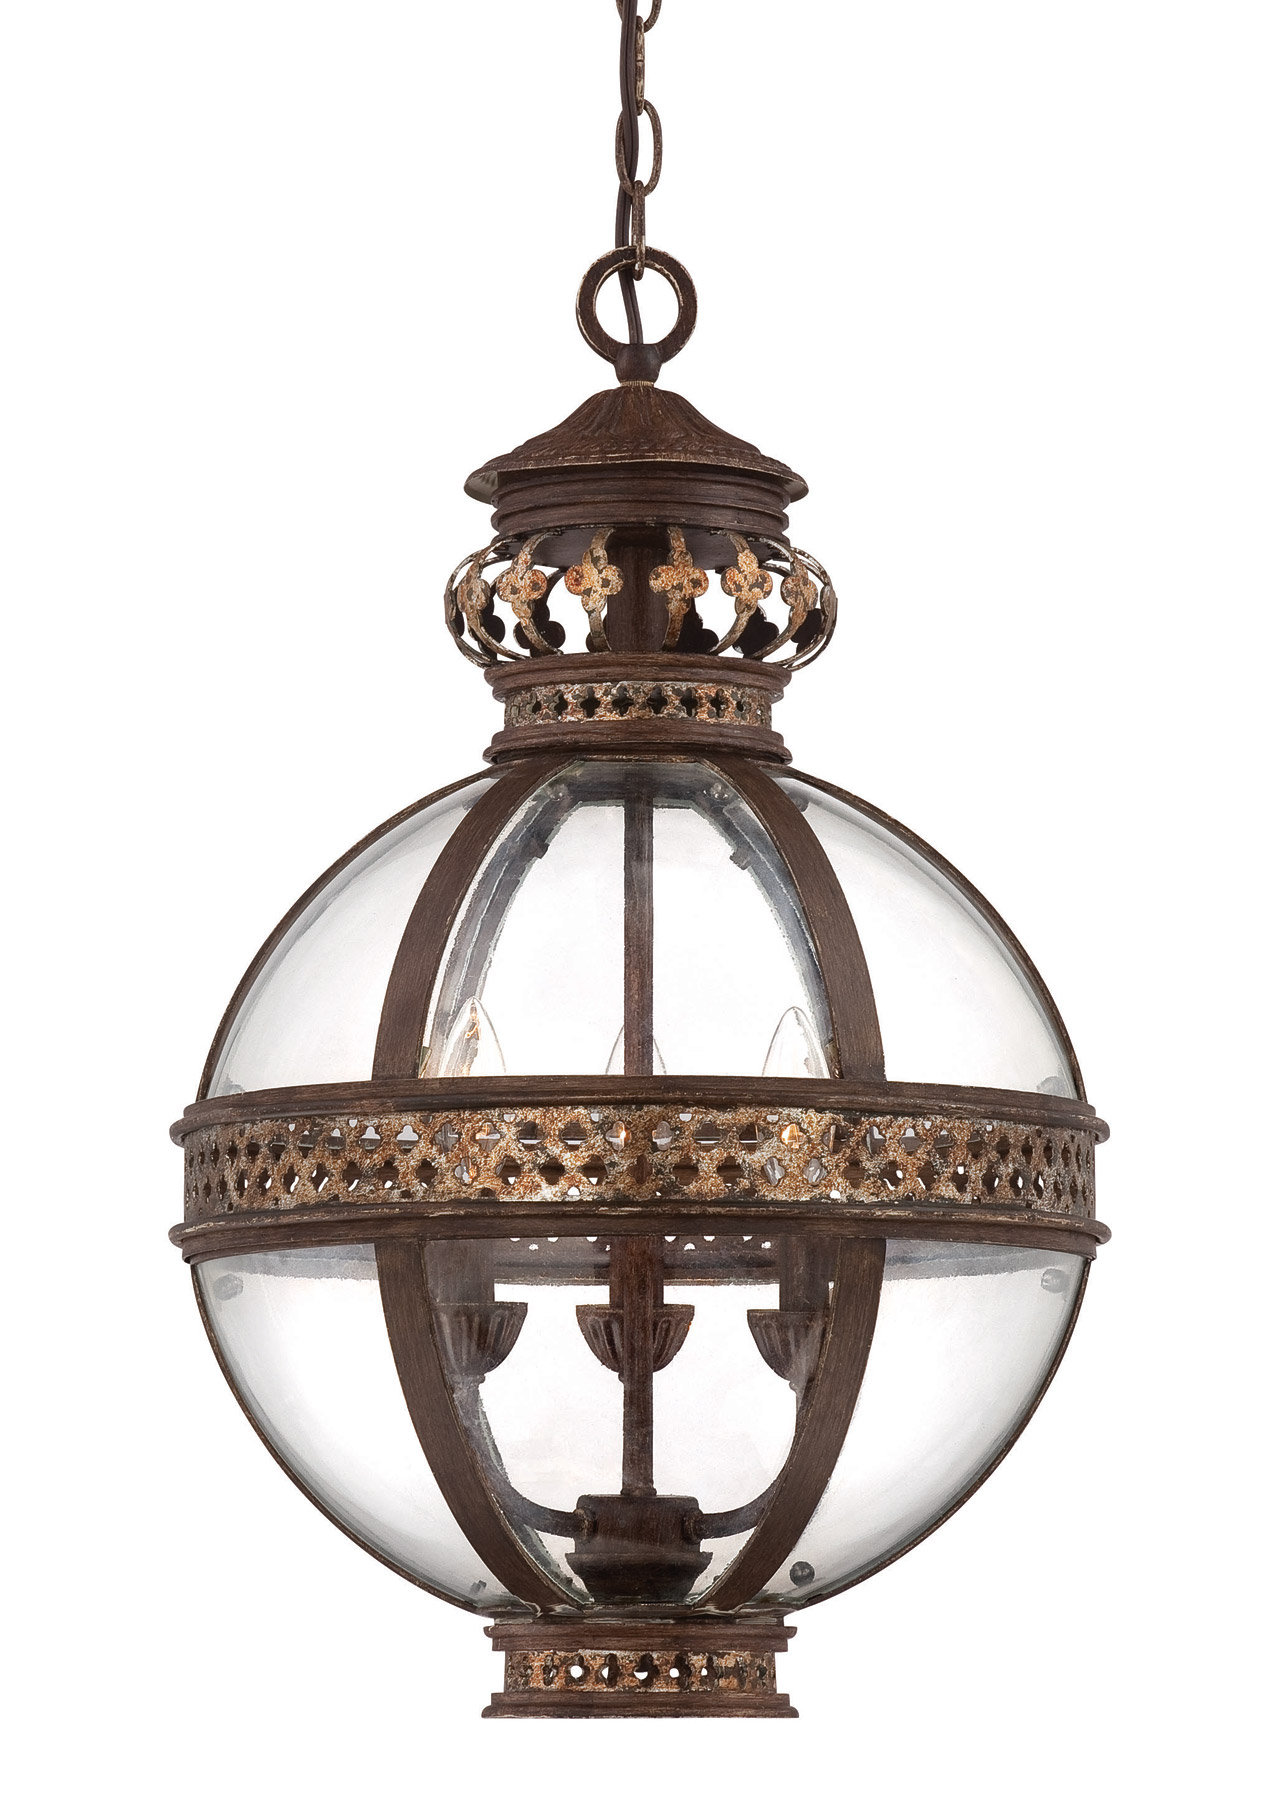 Savoy House 7 1480 3 124 Strasbourg Small French Globe Lantern